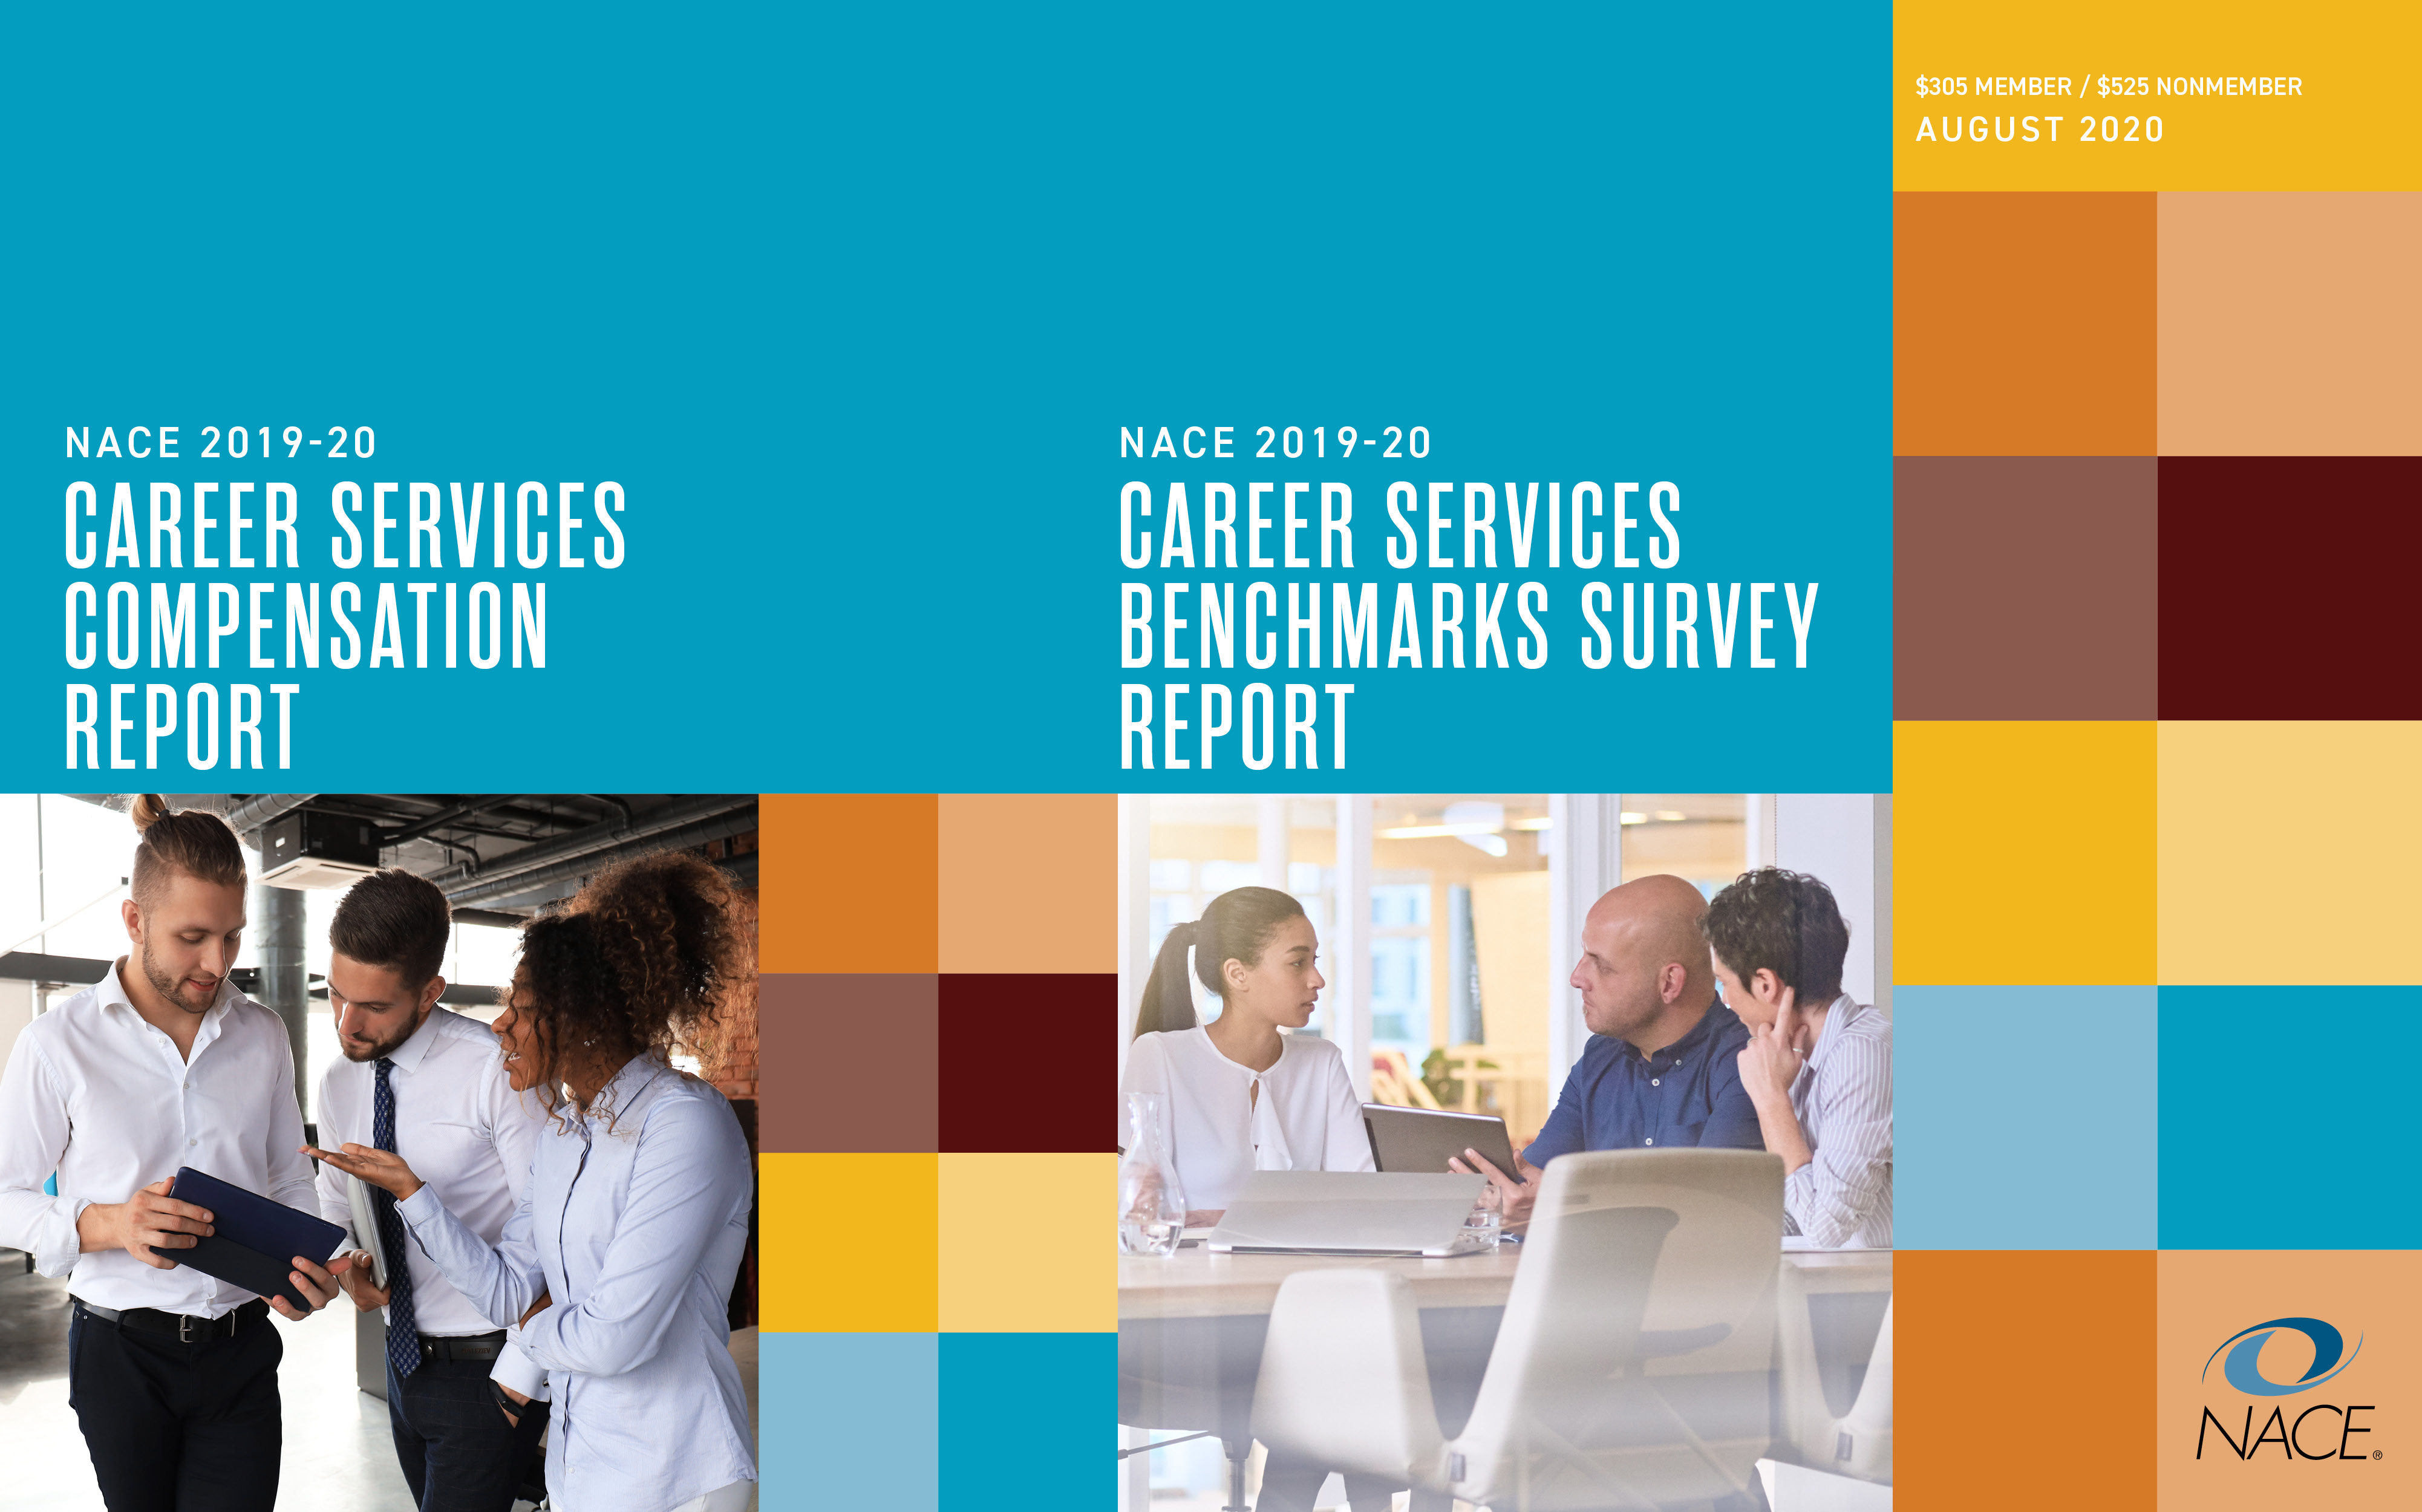 2019-20 NACE Career Services Benchmark & Compensation Report Combo